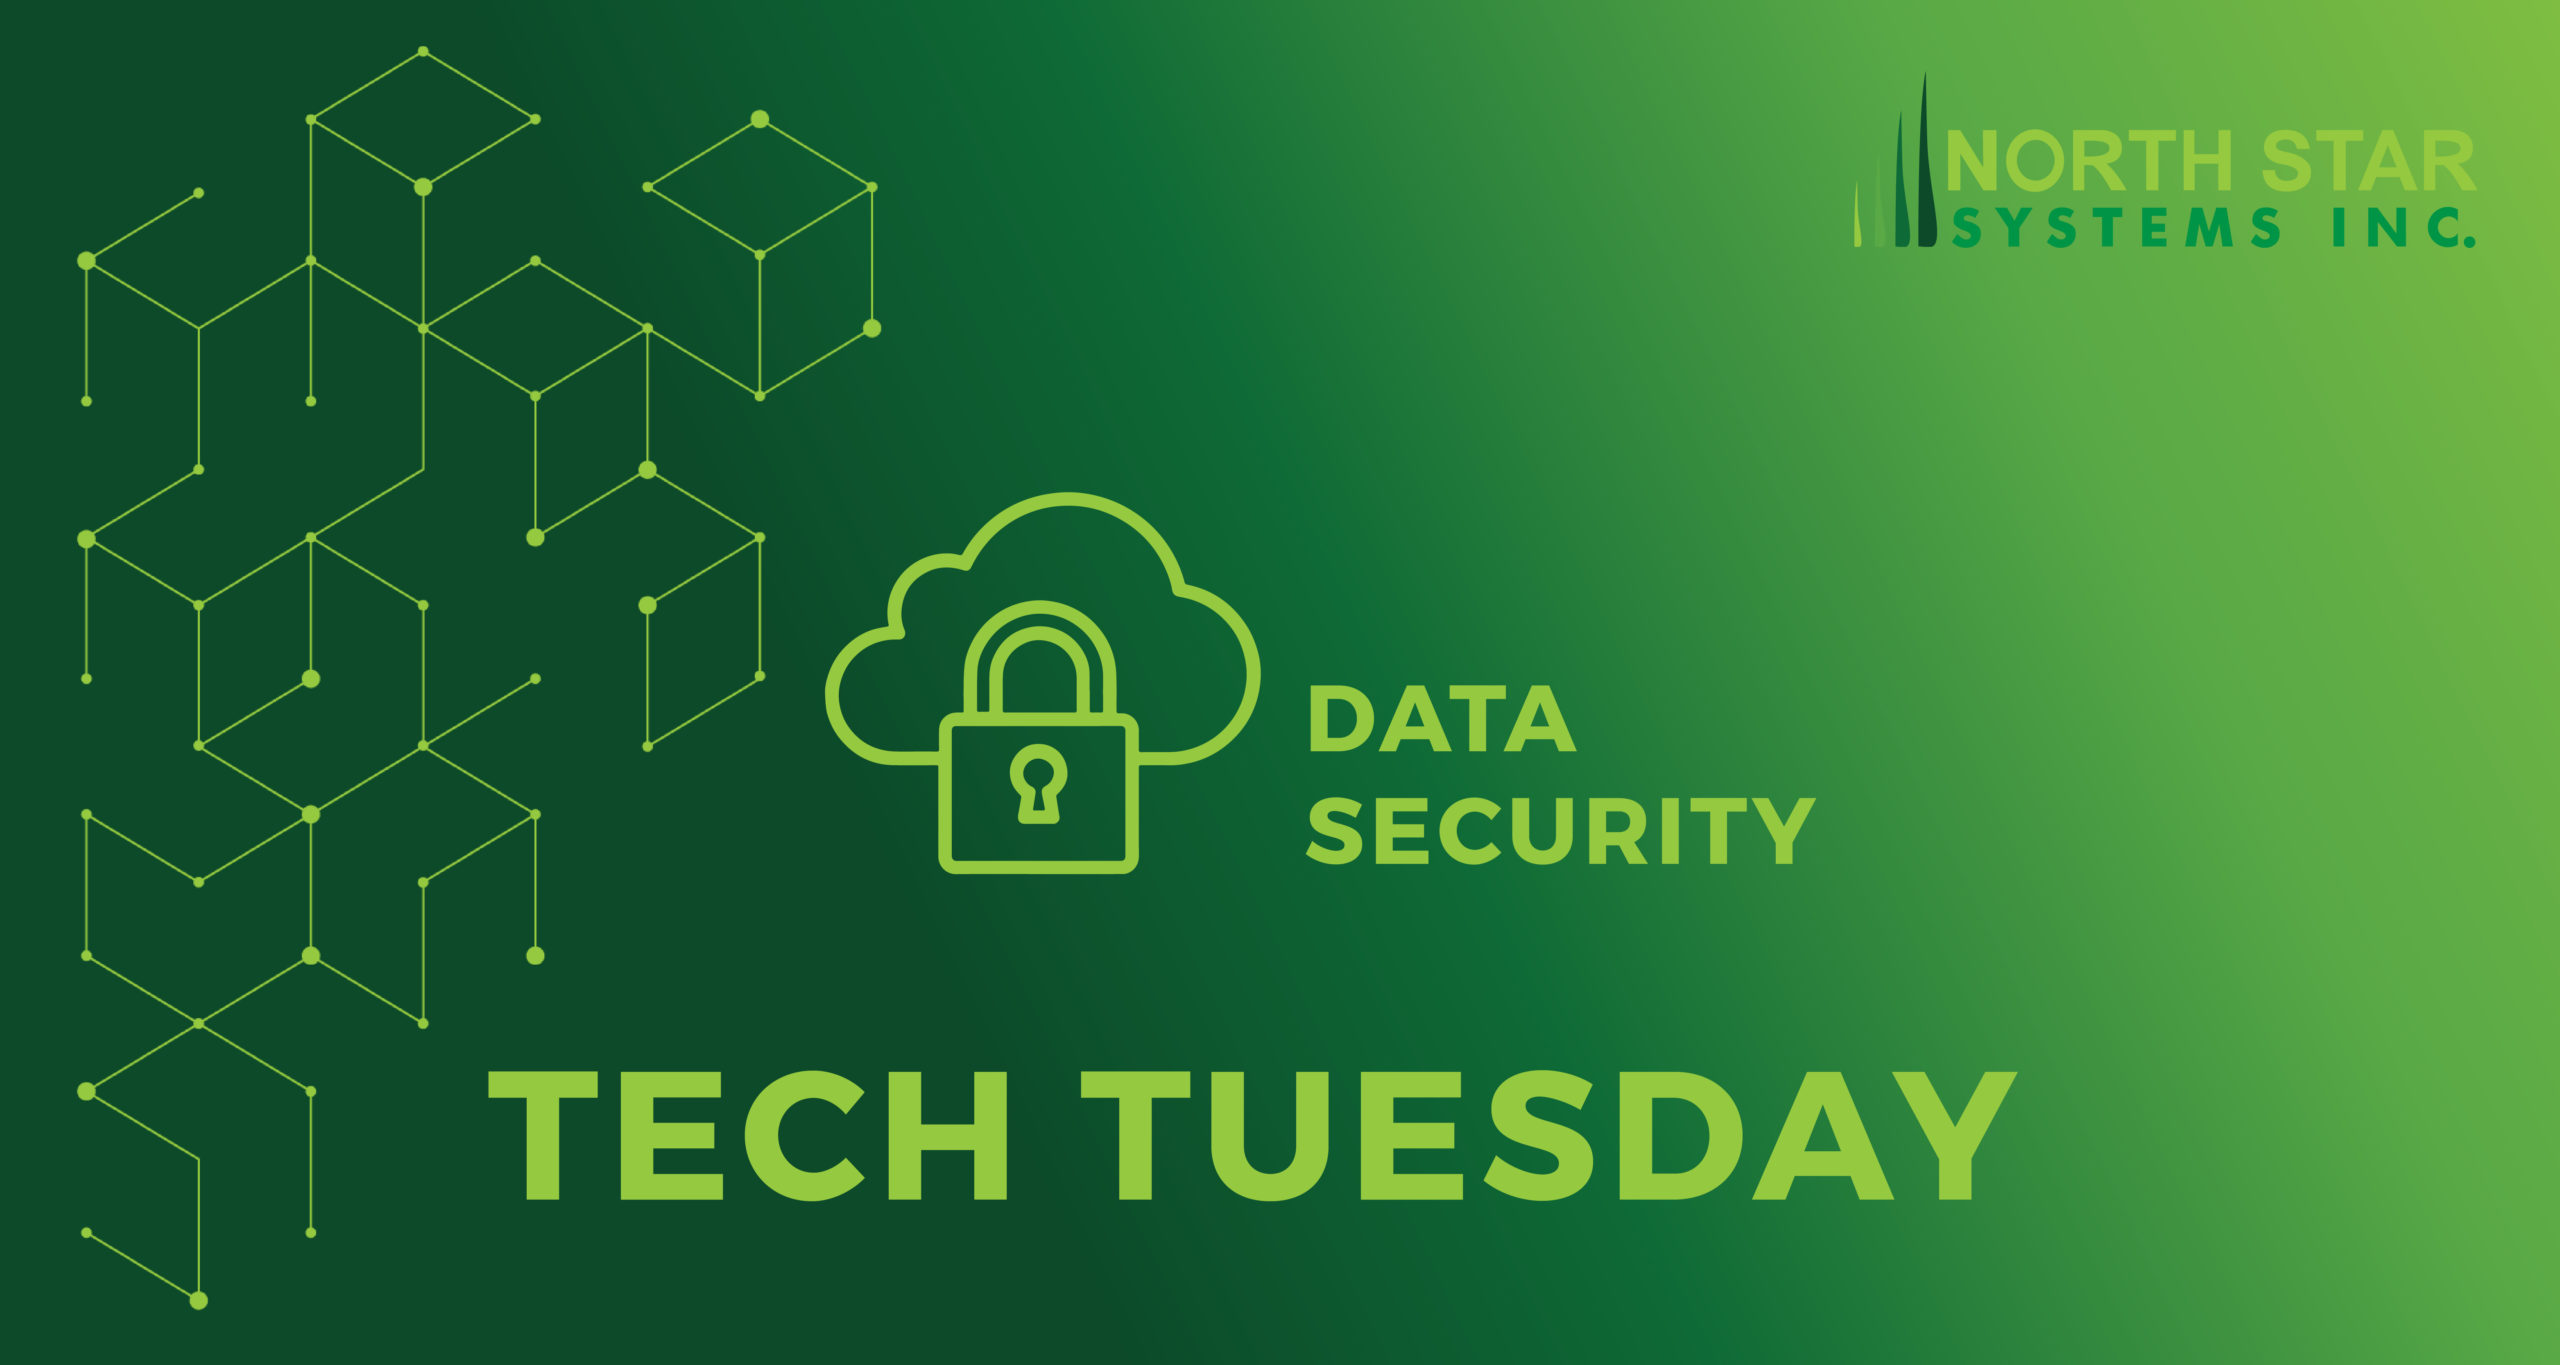 IIoT and Data Security